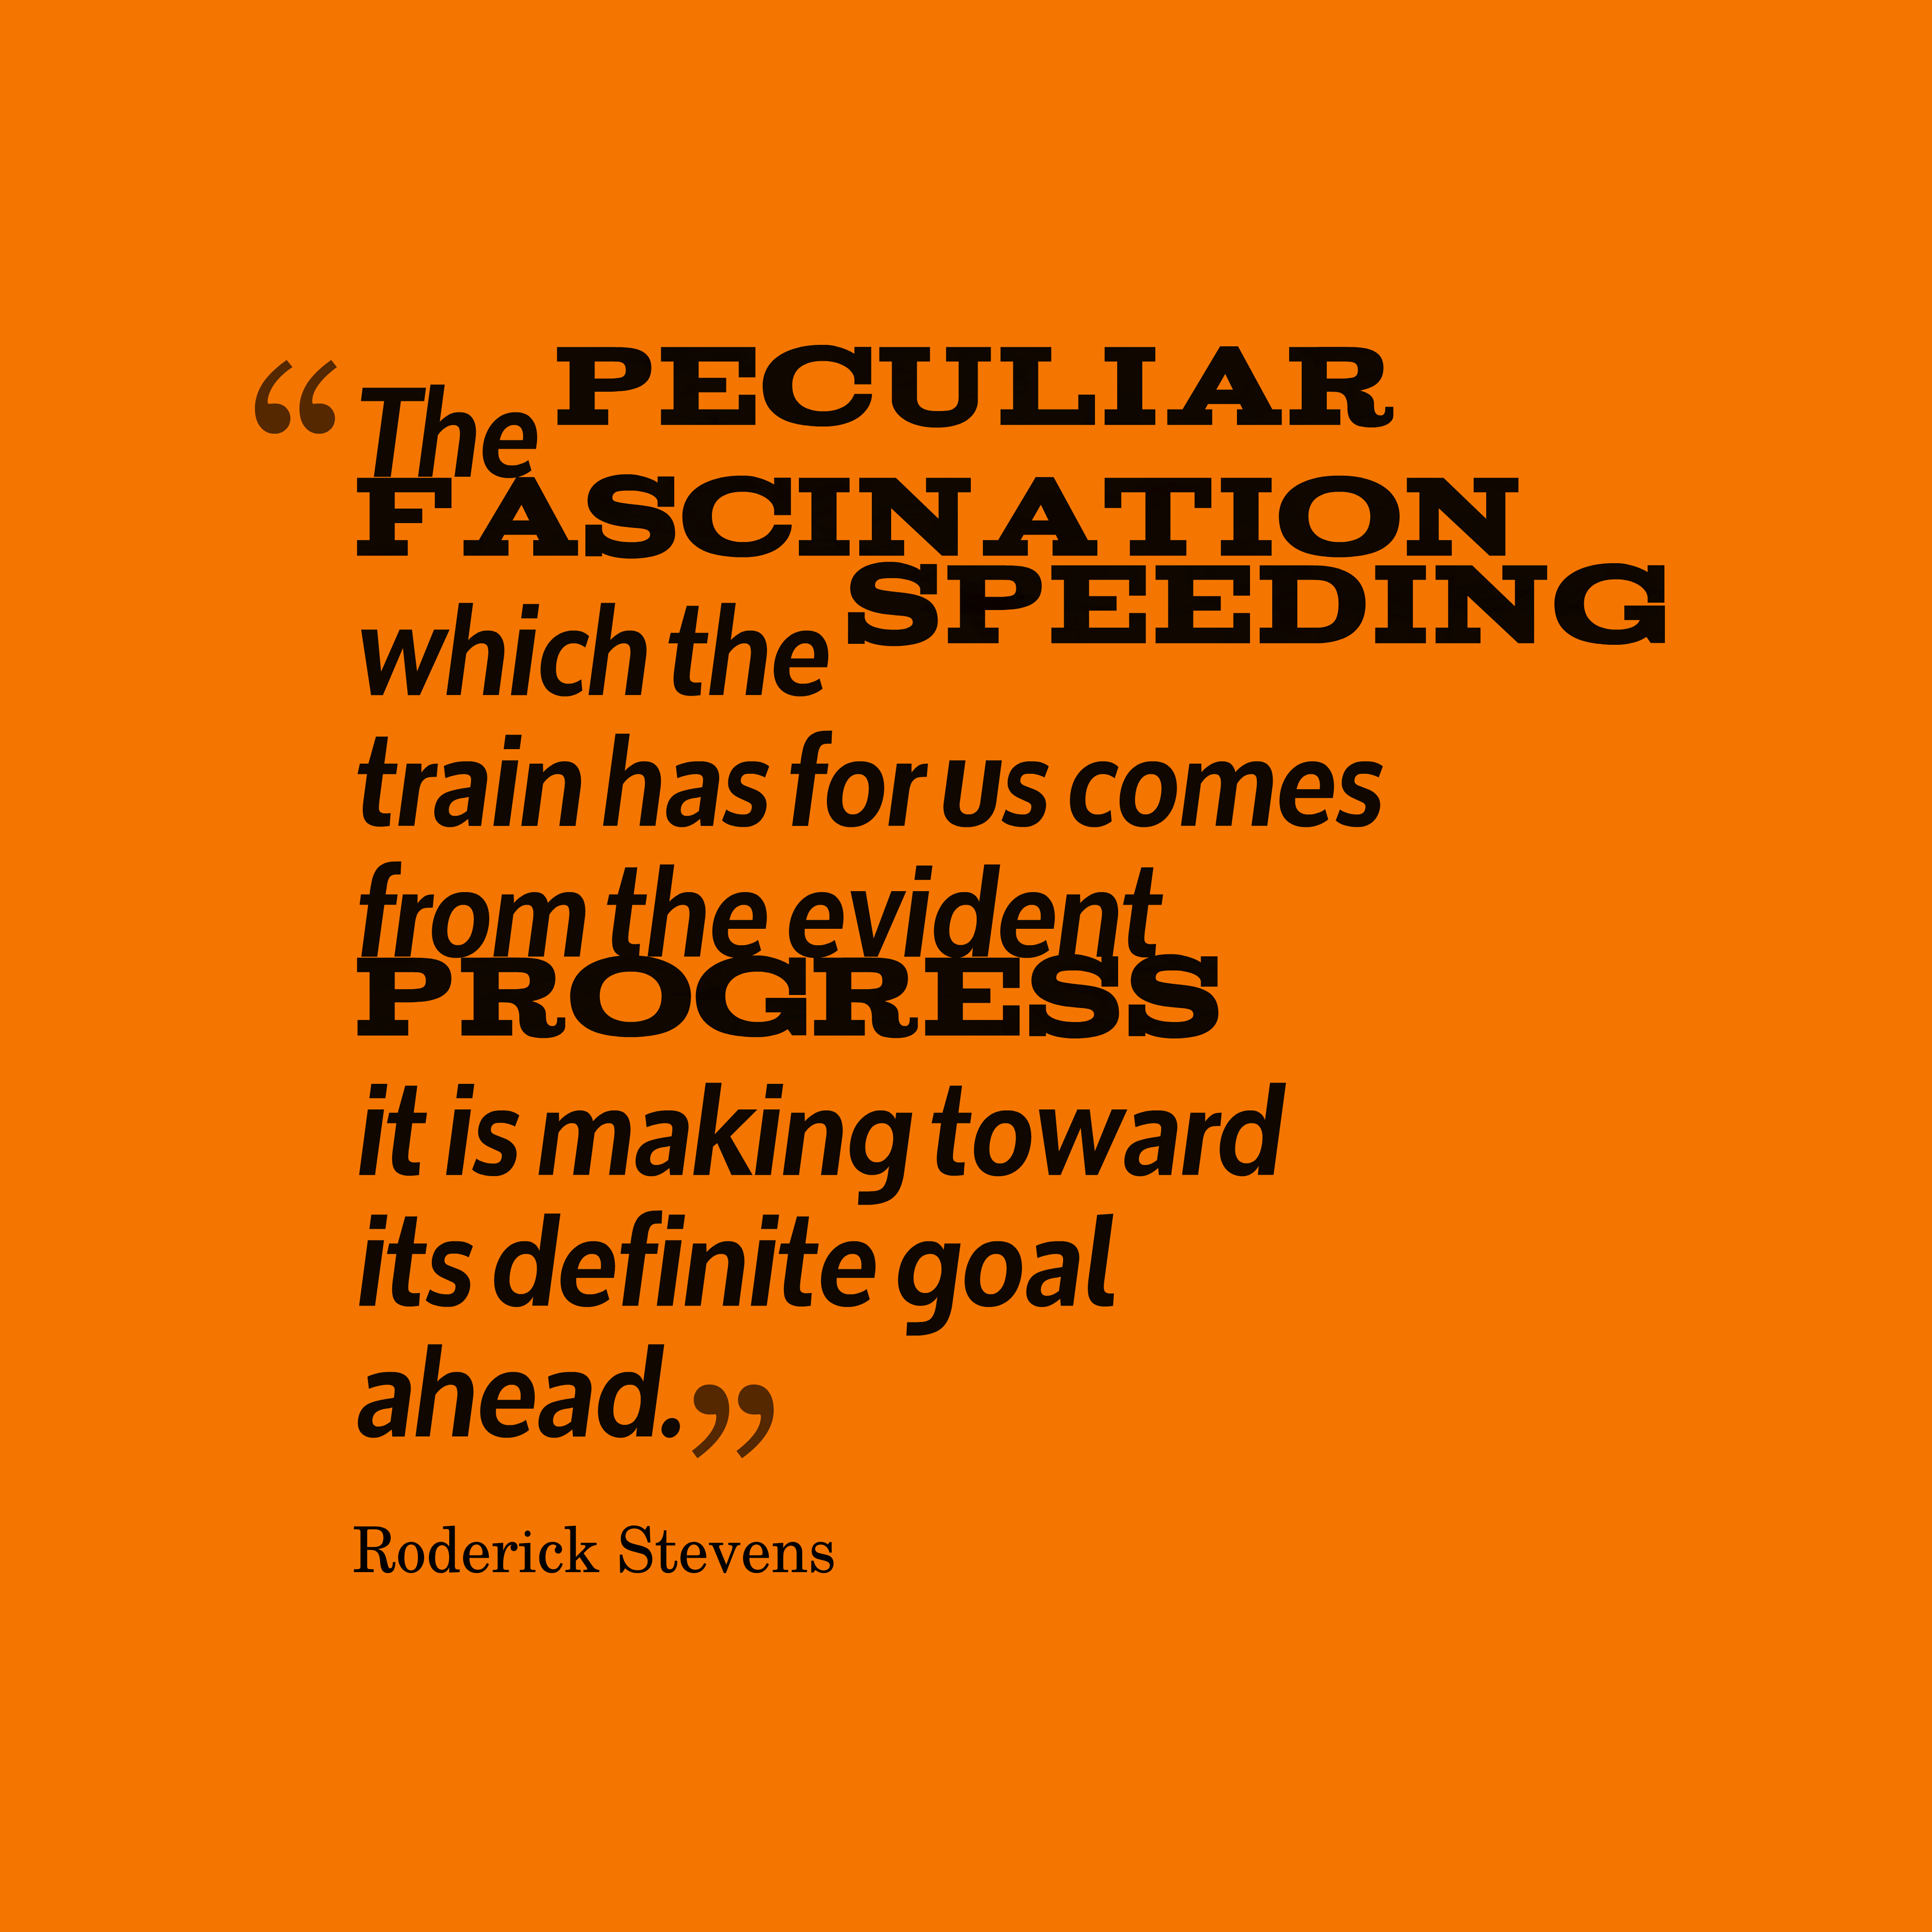 Quotes image of The peculiar fascination which the speeding train has for us comes from the evident progress it is making toward its definite goal ahead.